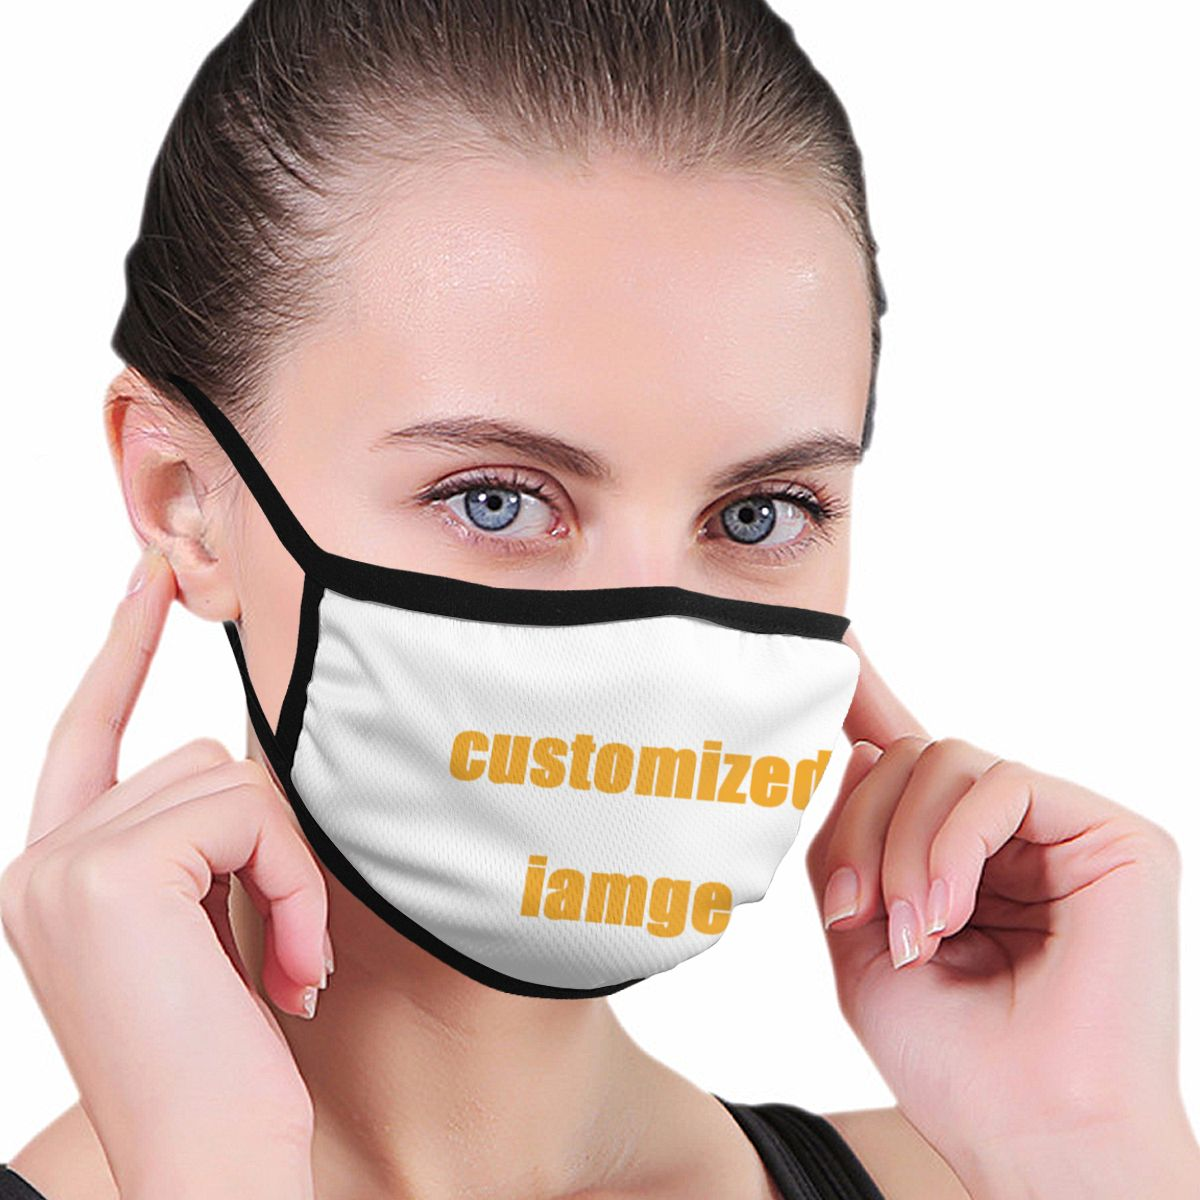 NOISYDESIGNS 10PCS/set Mouth Mask Custom Printed Washable Breathable Customized Mouth Cover Face Mouth Mask Clothing Accessories